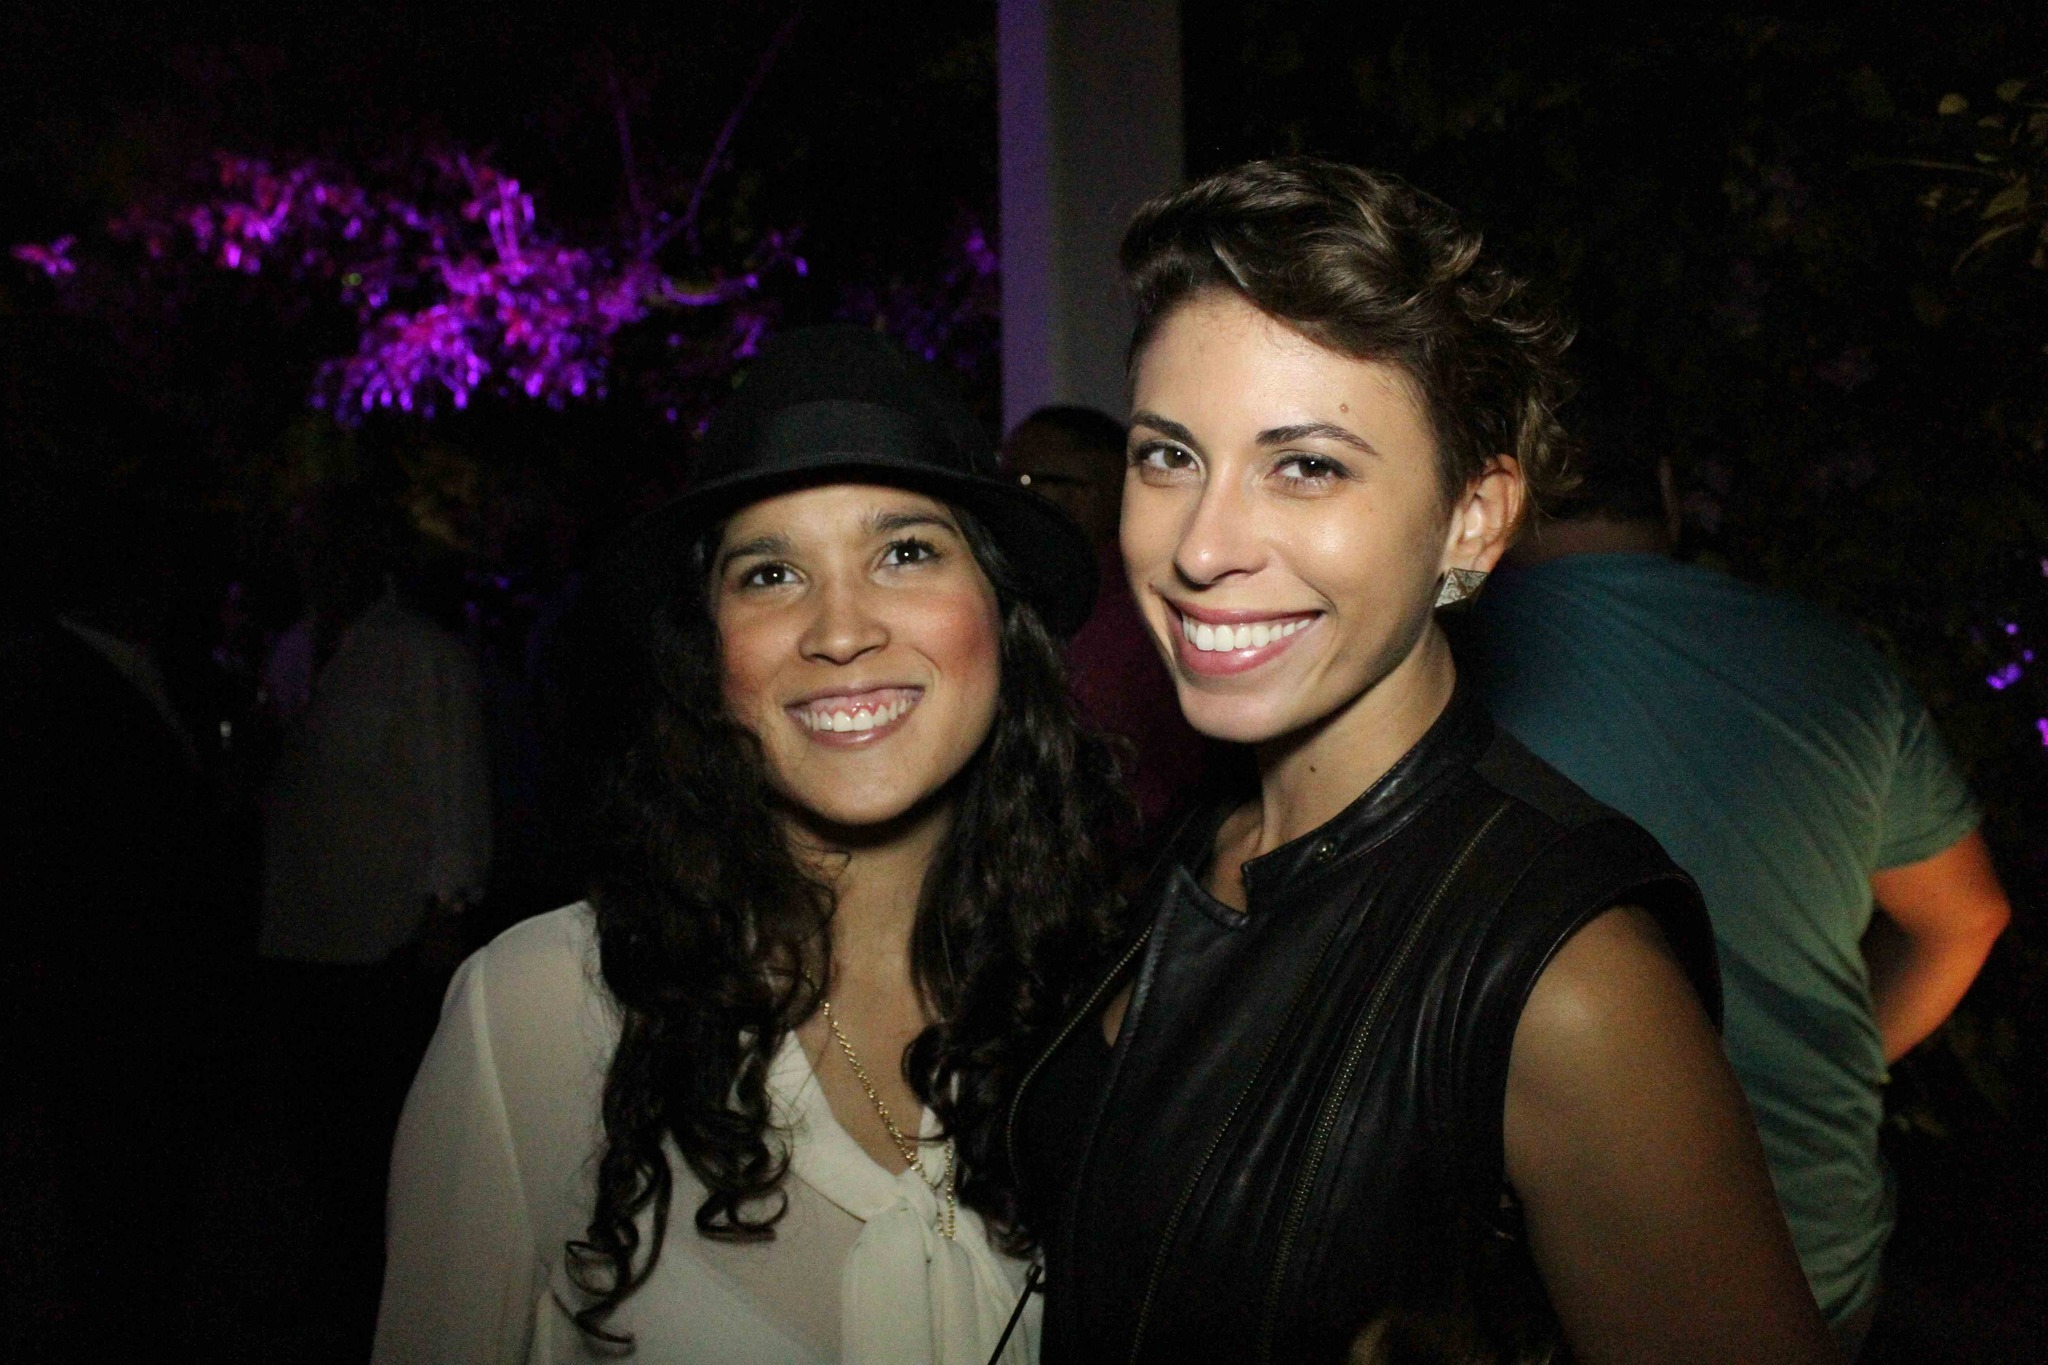 PHOTOS: The fashionistas of Art Basel - Carina Belmonte and Liana Lozada